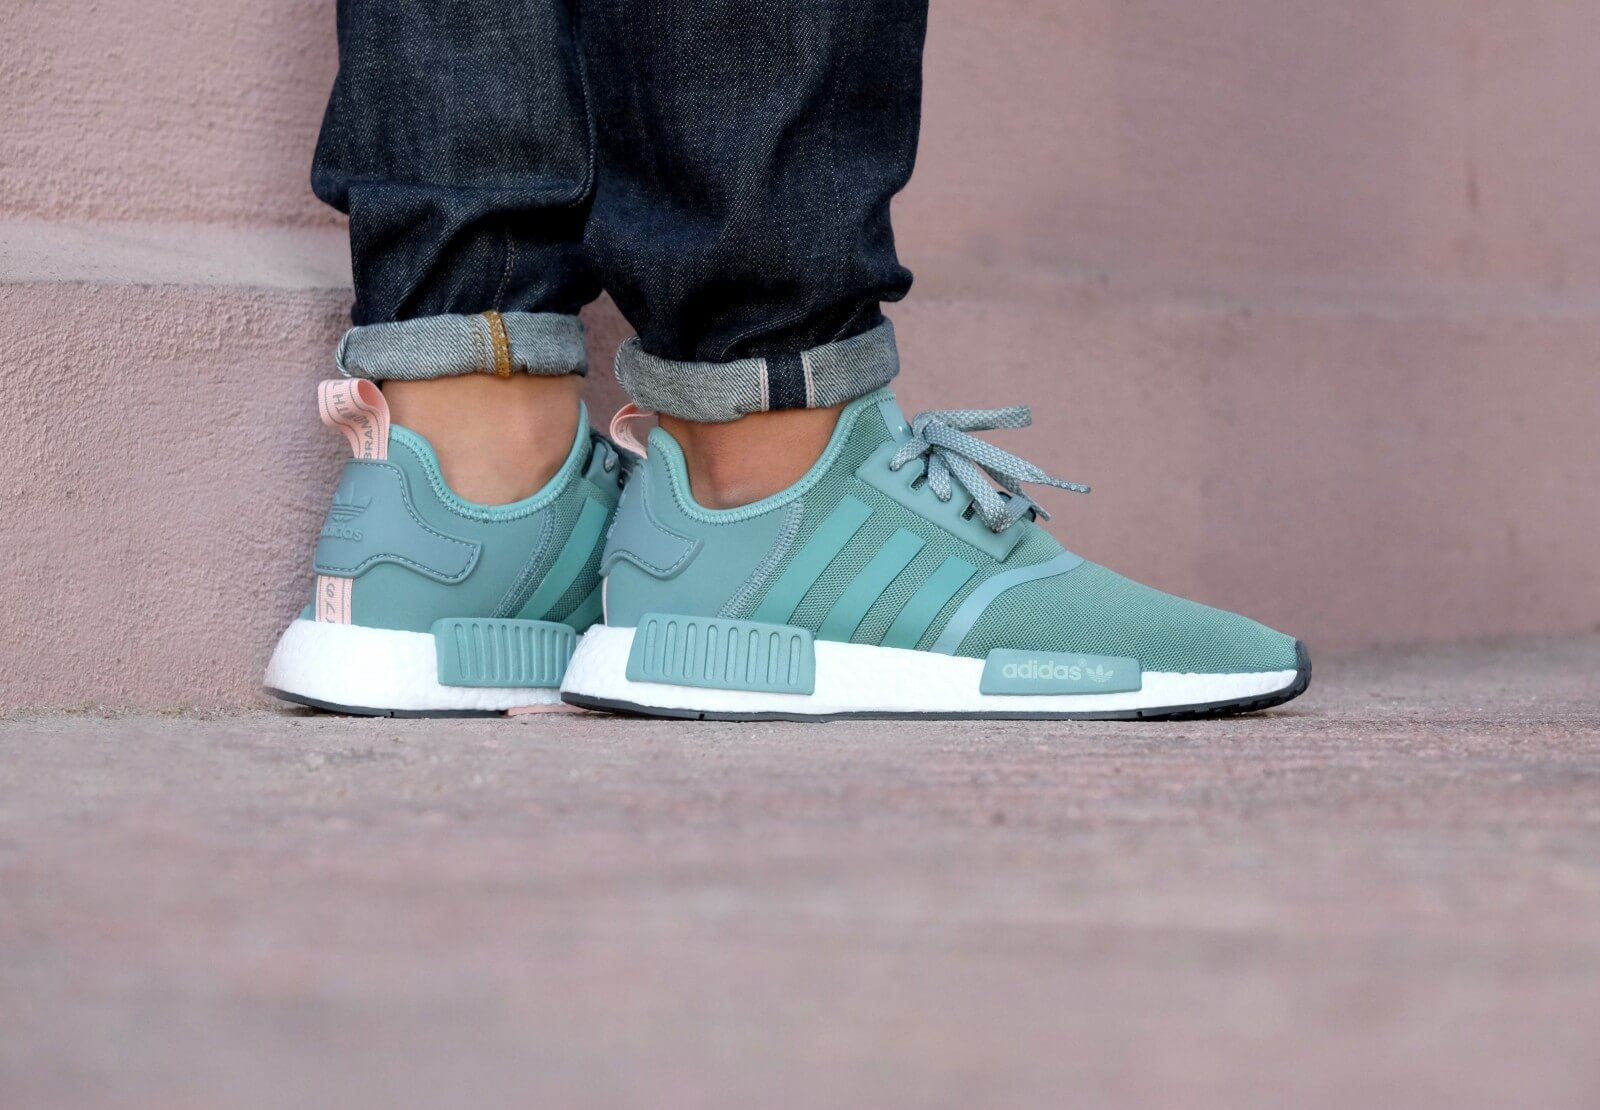 Adidas NMD R1 Vapour Steel Vapour Pink S76010